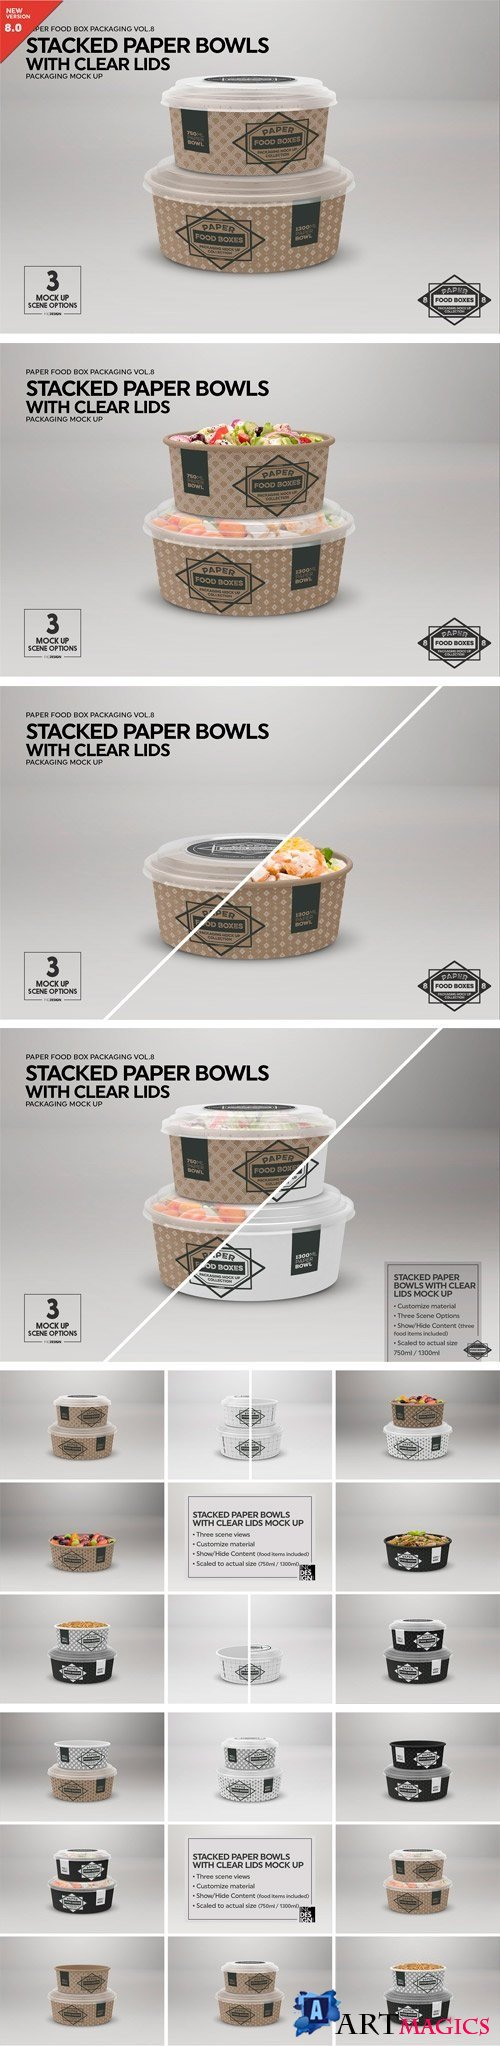 Stacked Paper Bowls Mock Up 2181789